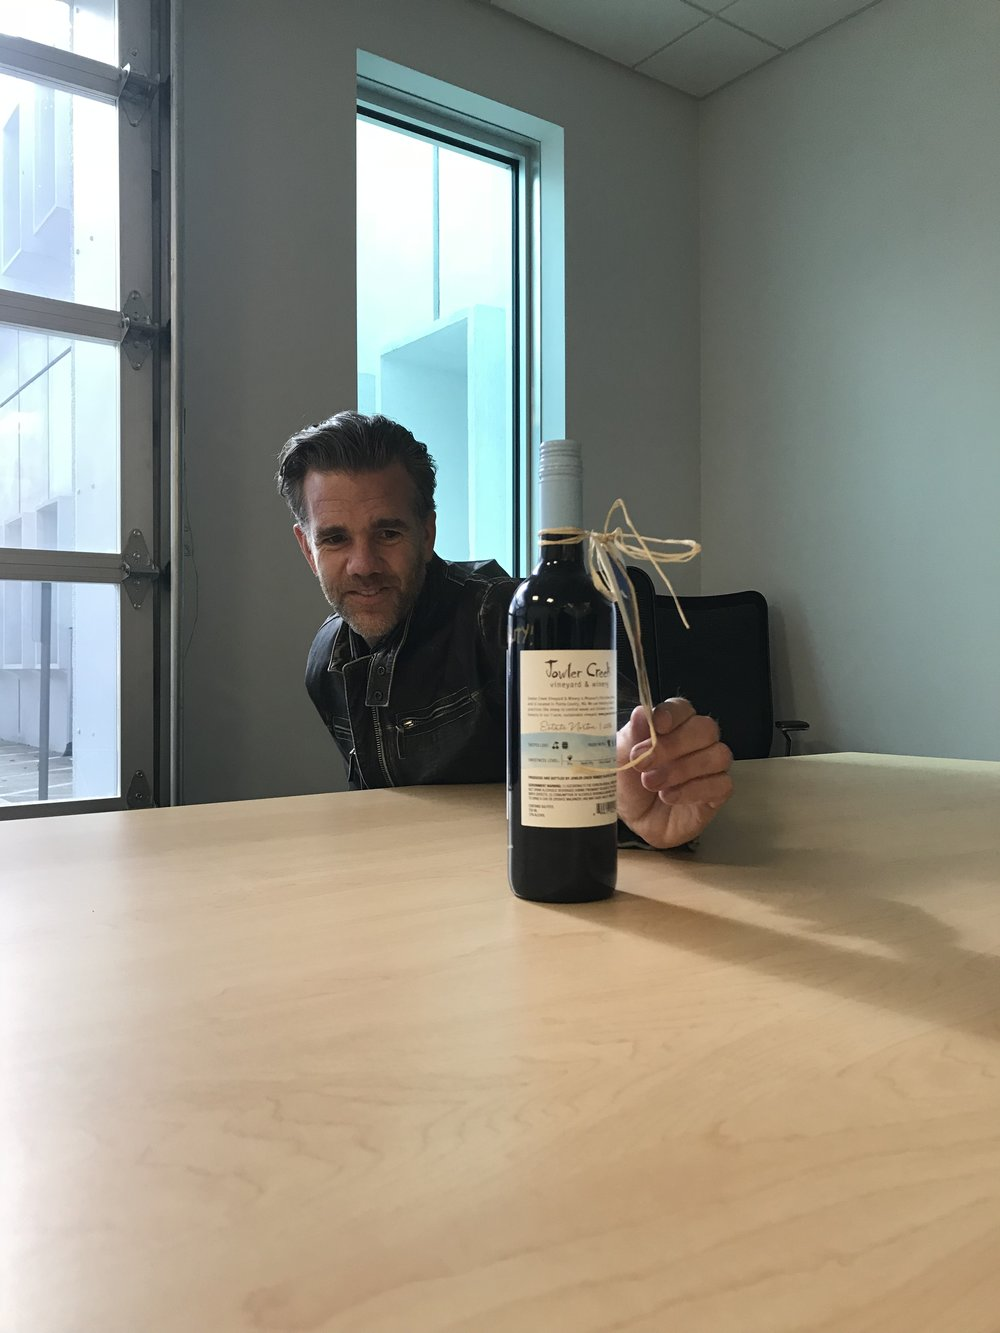 Matthew Chan wanted to give each of the executives he met with at Tesla a bottle of our 2016 Estate Norton wine since it's sustainably-grown on-site in our vineyard. Here, he presented our wine to Franz von Holzhausen, Chief Designer at Tesla.